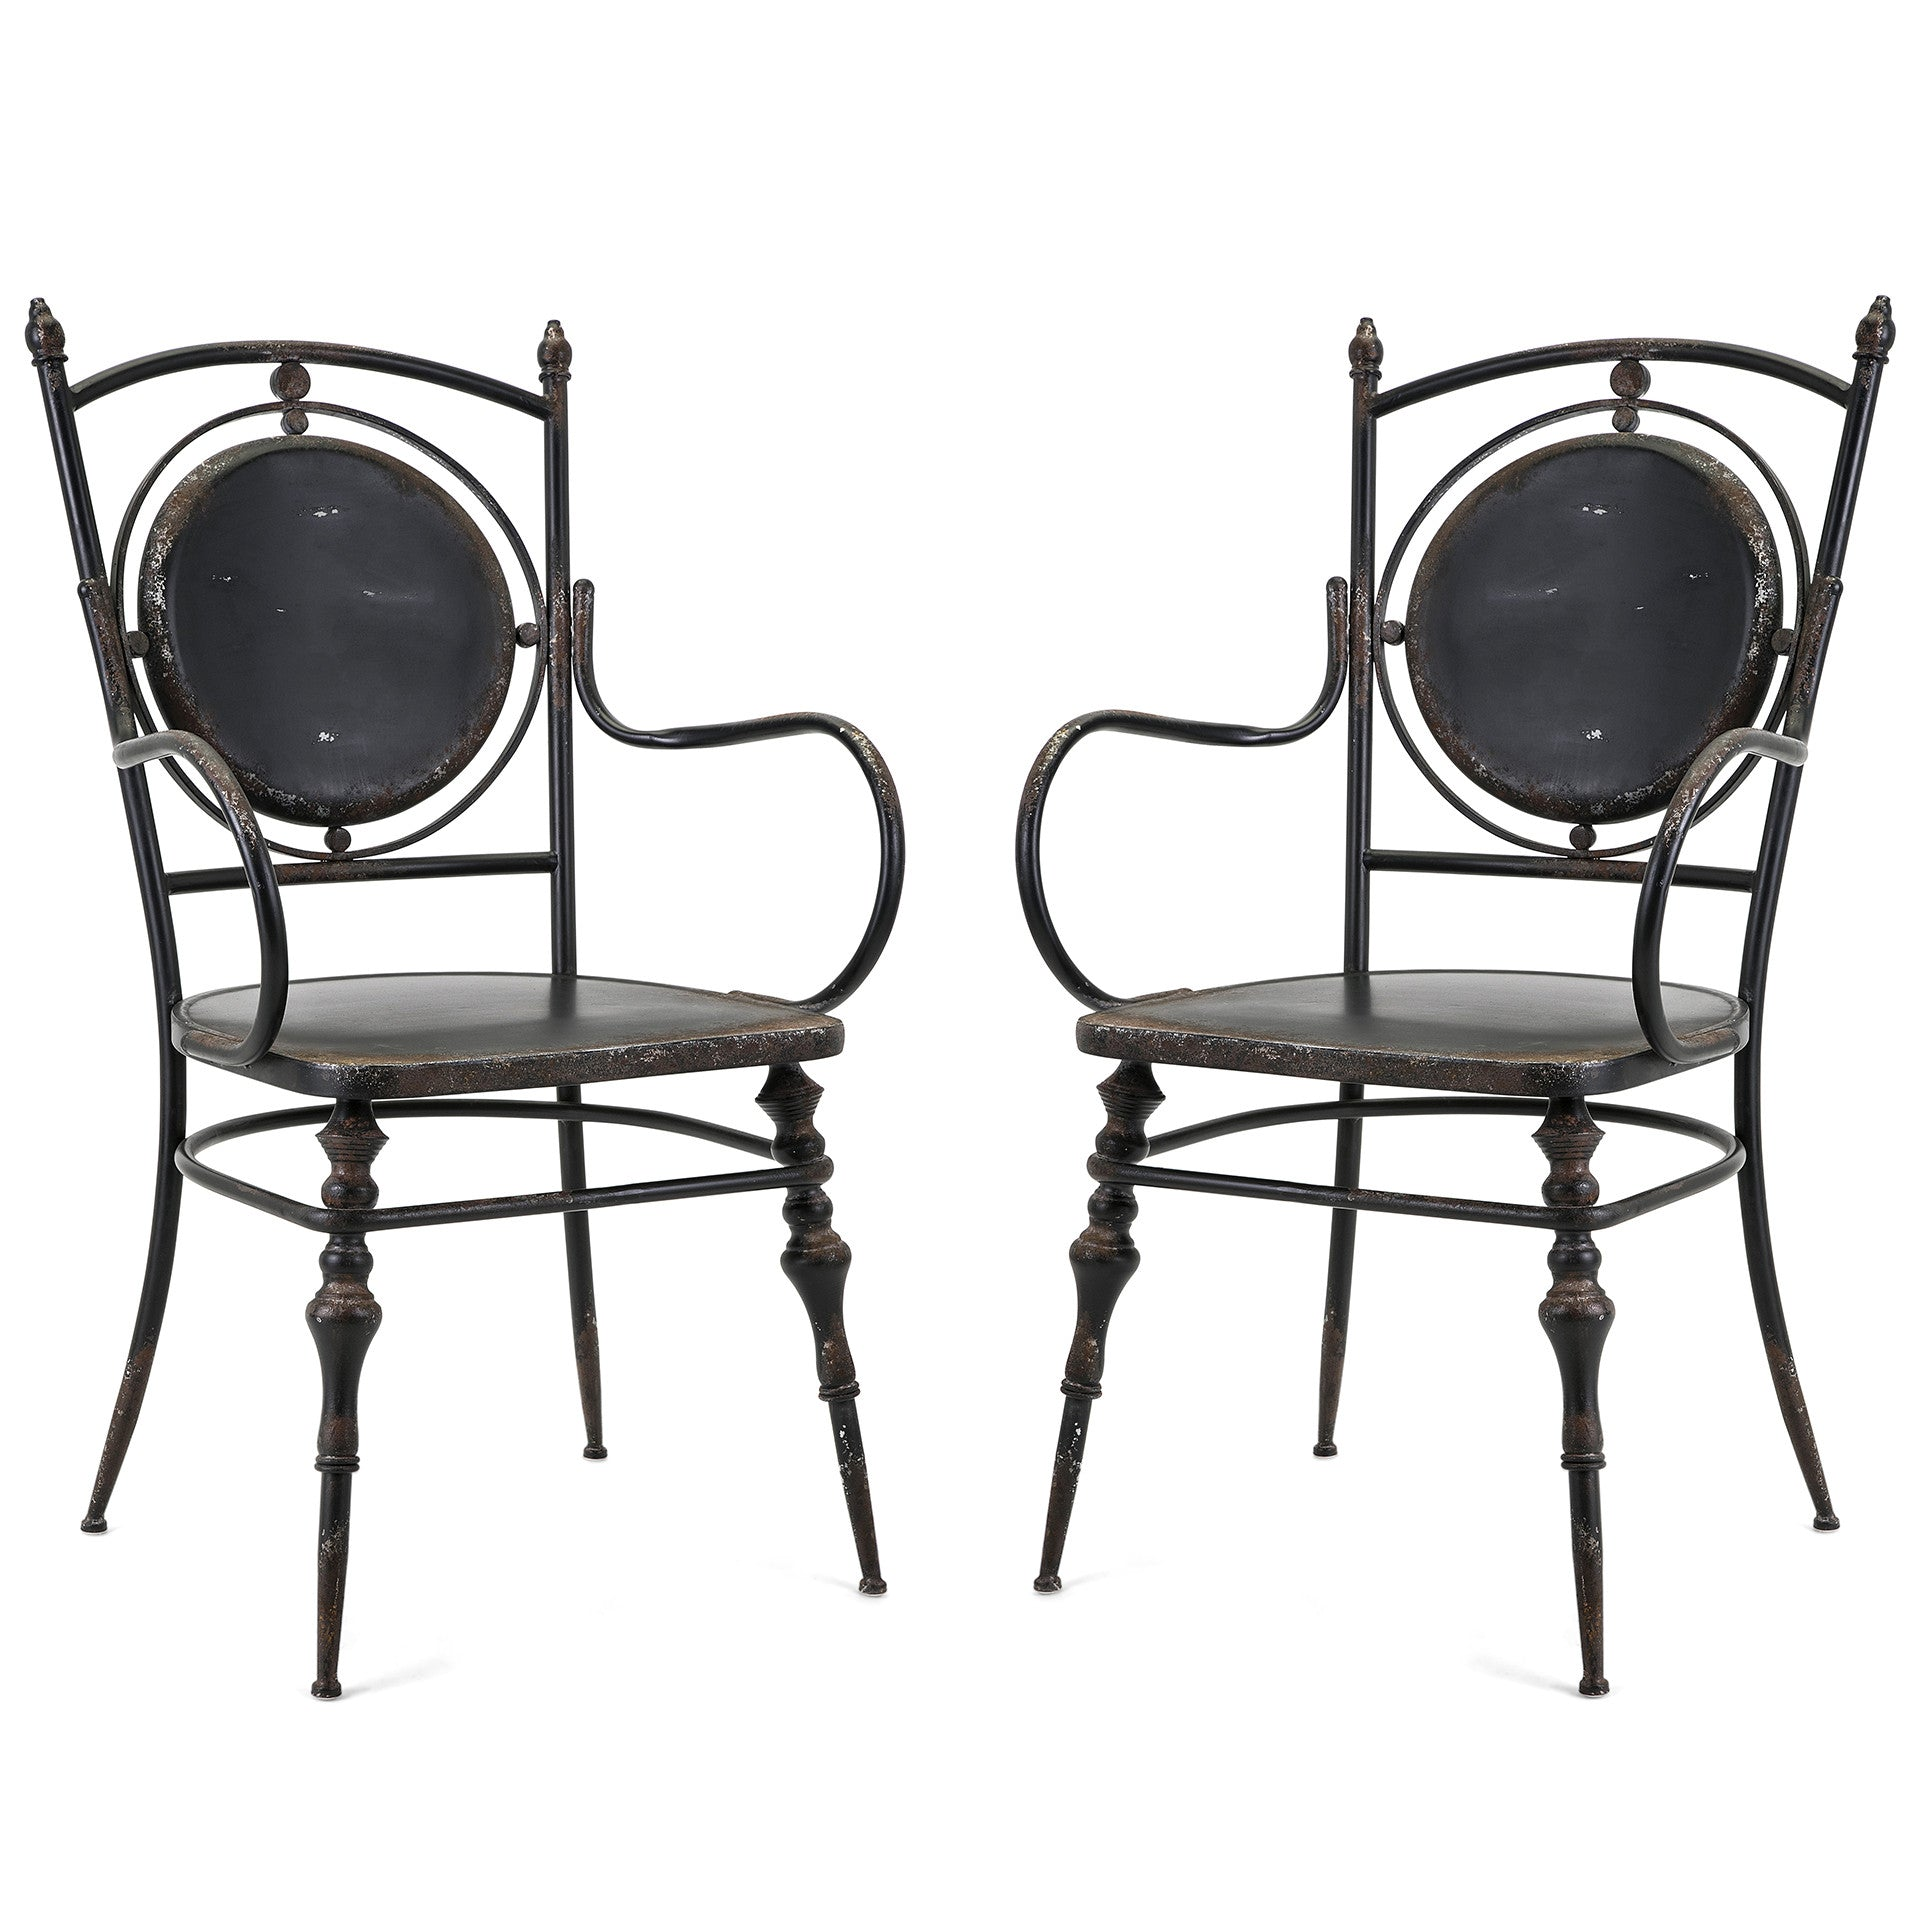 Etonnant Industrial Modern Farmhouse Rustic Metal Black Arm Chairs   Set Of 2